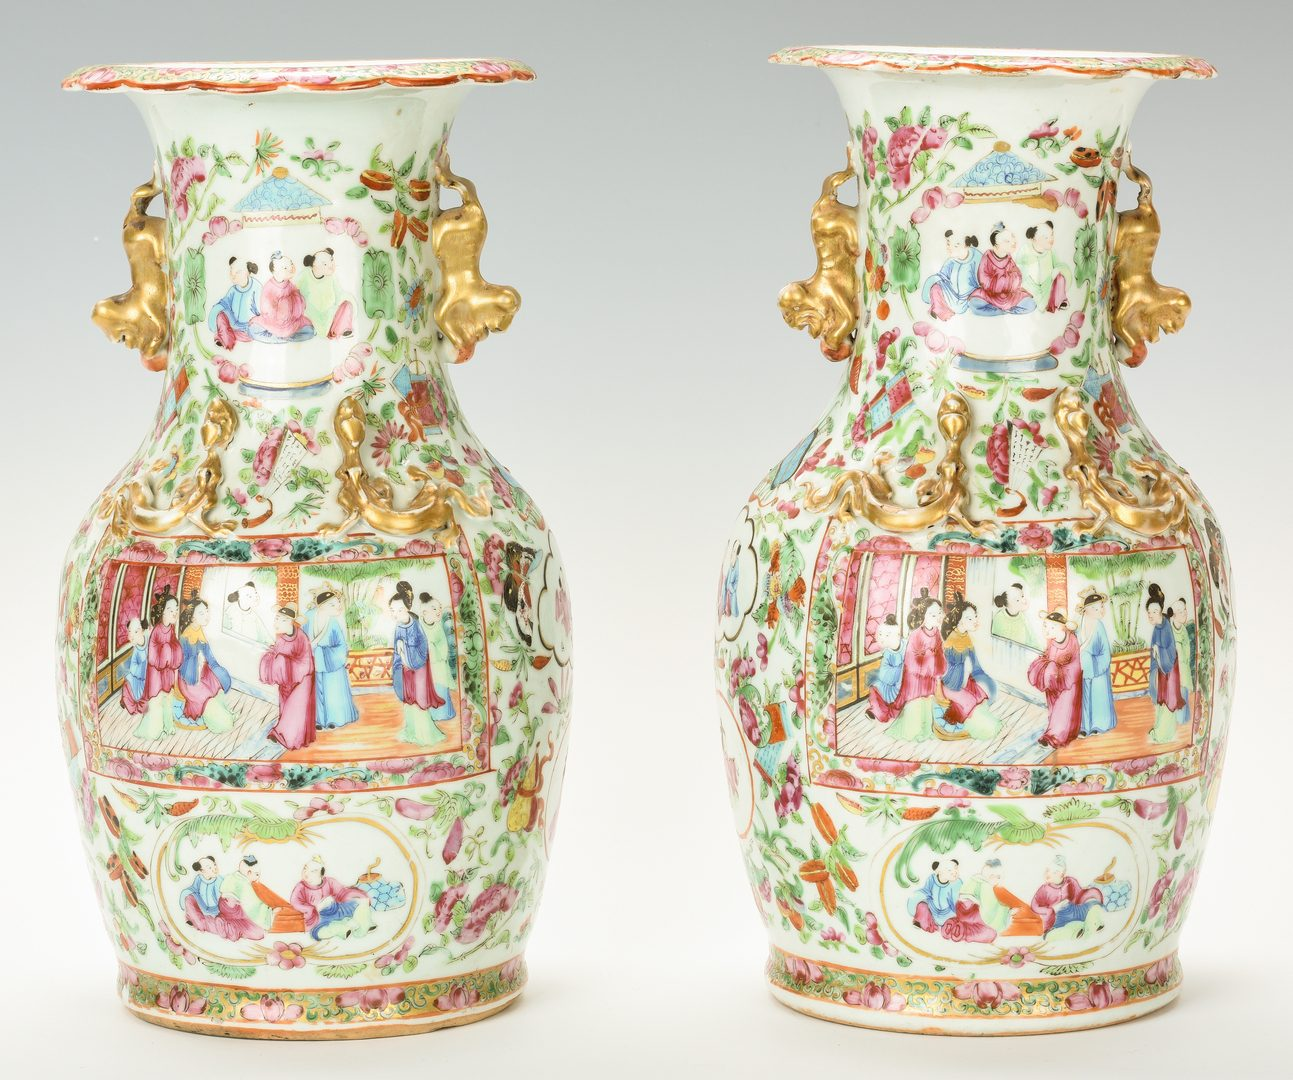 Lot 24: Pr. Chinese Export Rose Mandarin Baluster Vases